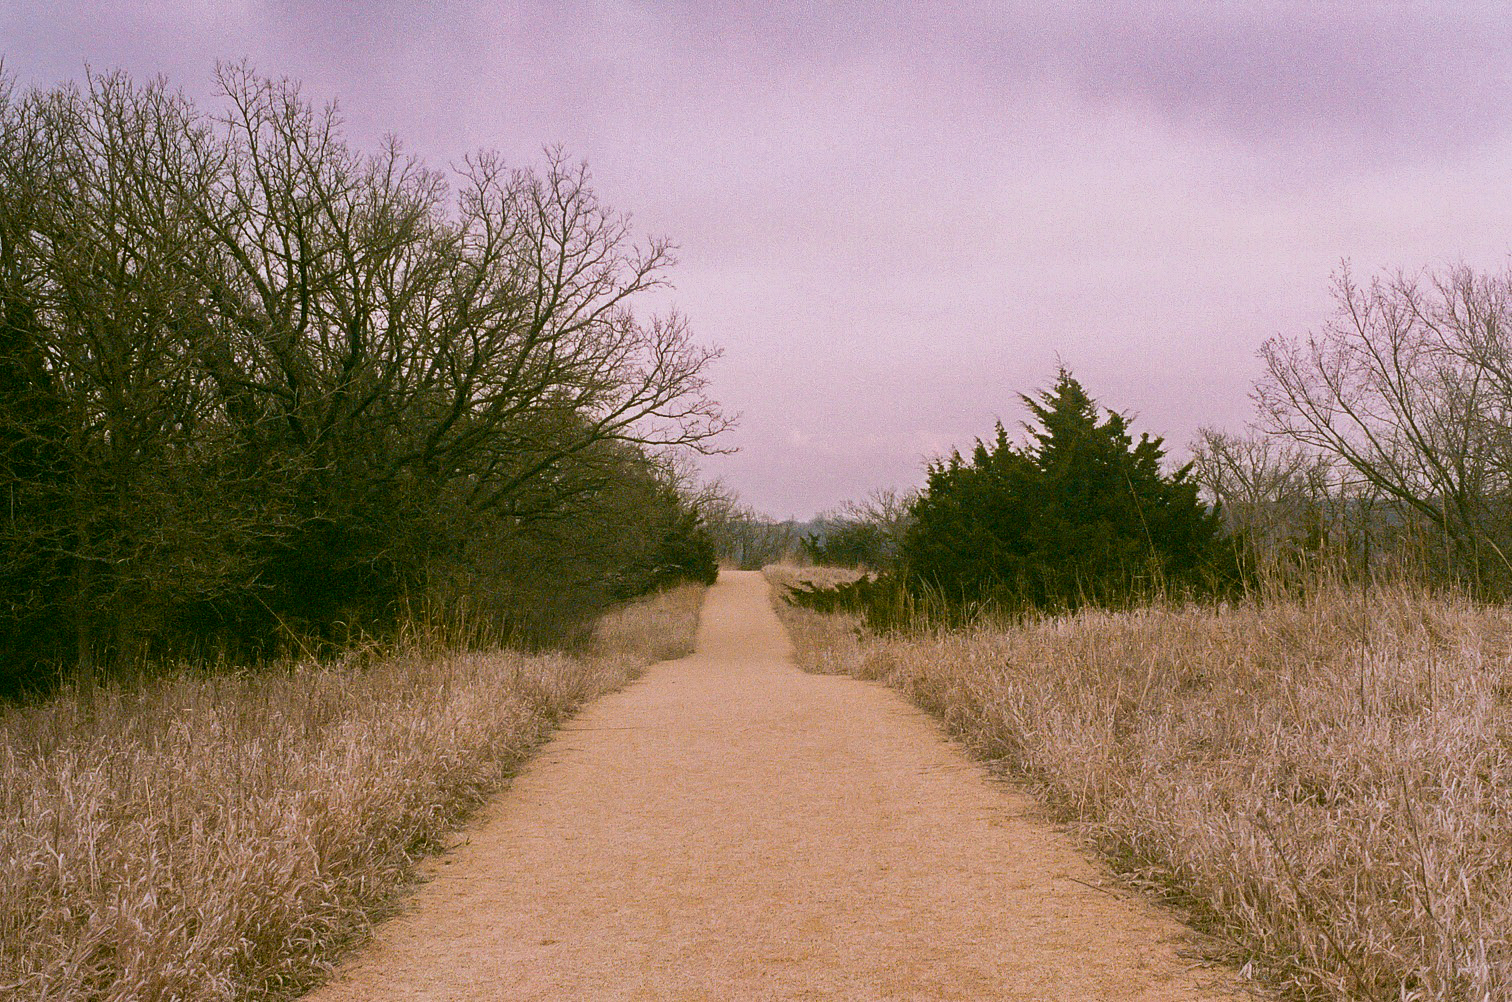 Good Earth State Park, Minolta SRT 201, shot on expired kodak gold 400